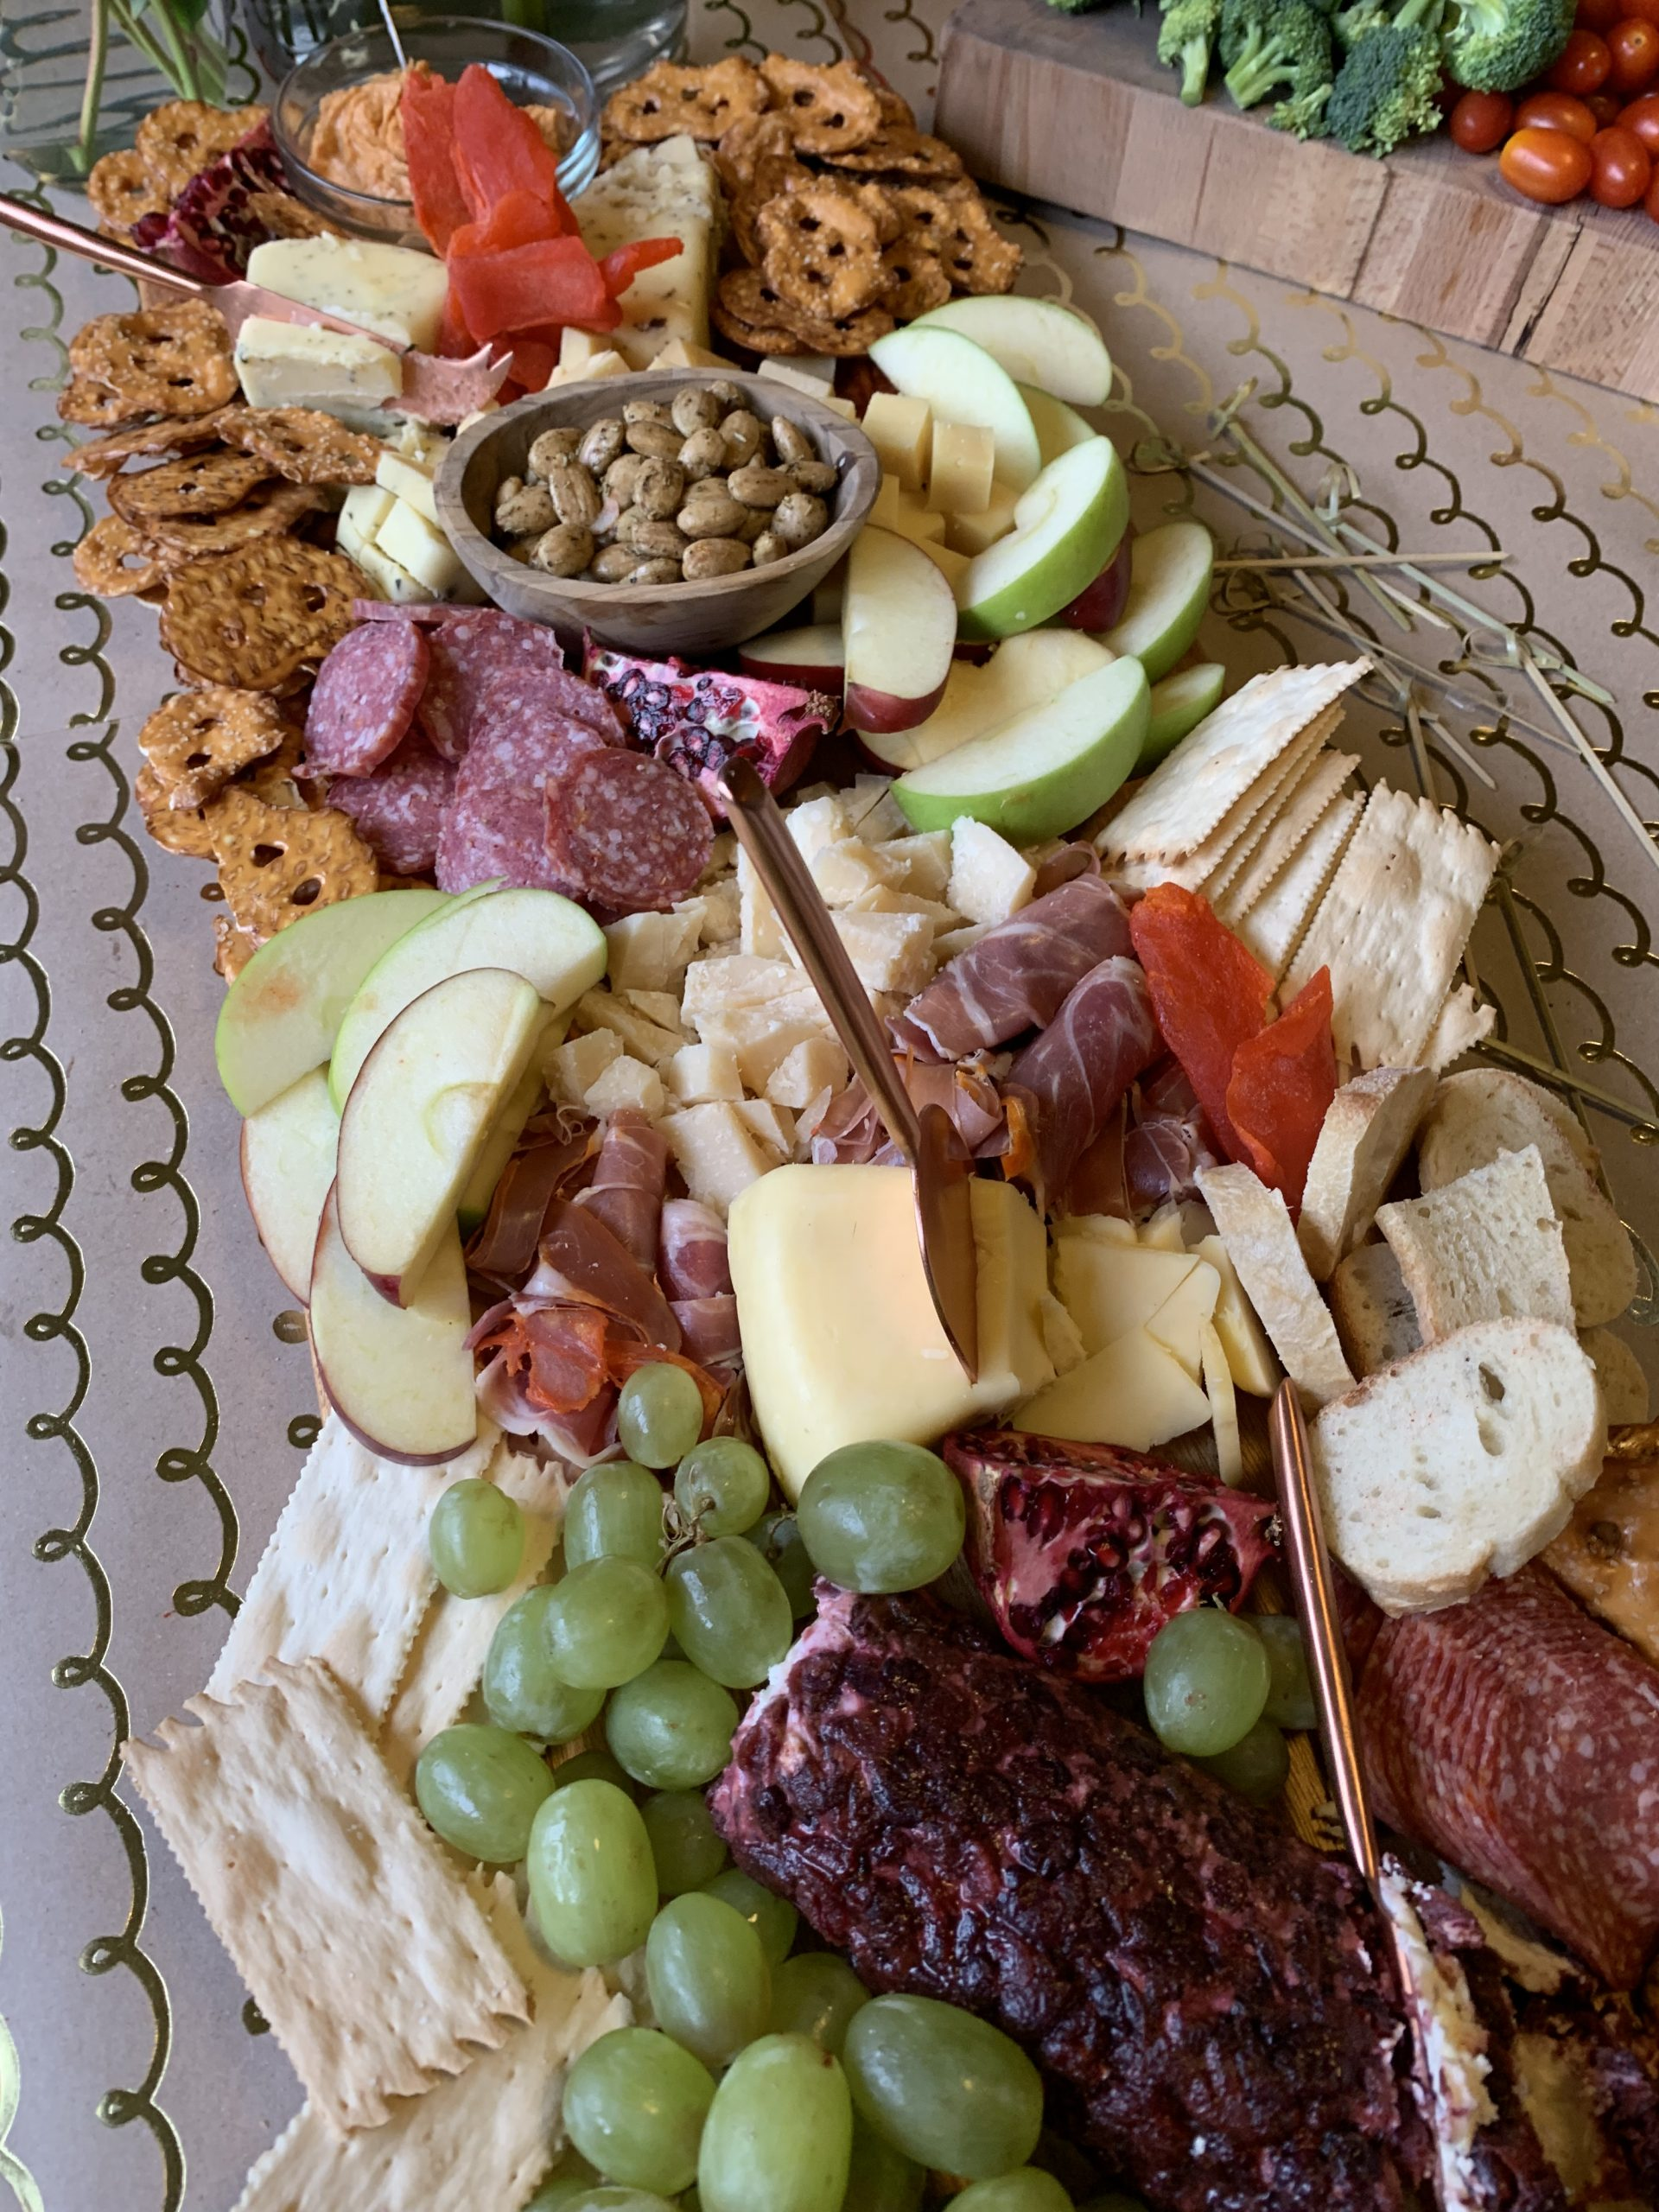 Christmas Eve + My First Grazing Board - Sharing all the details on our Christmas Eve party + creating my first charcuterie grazing board! | Grazing board ingredients - Grazing Board Styling - Grazing board for the holidays